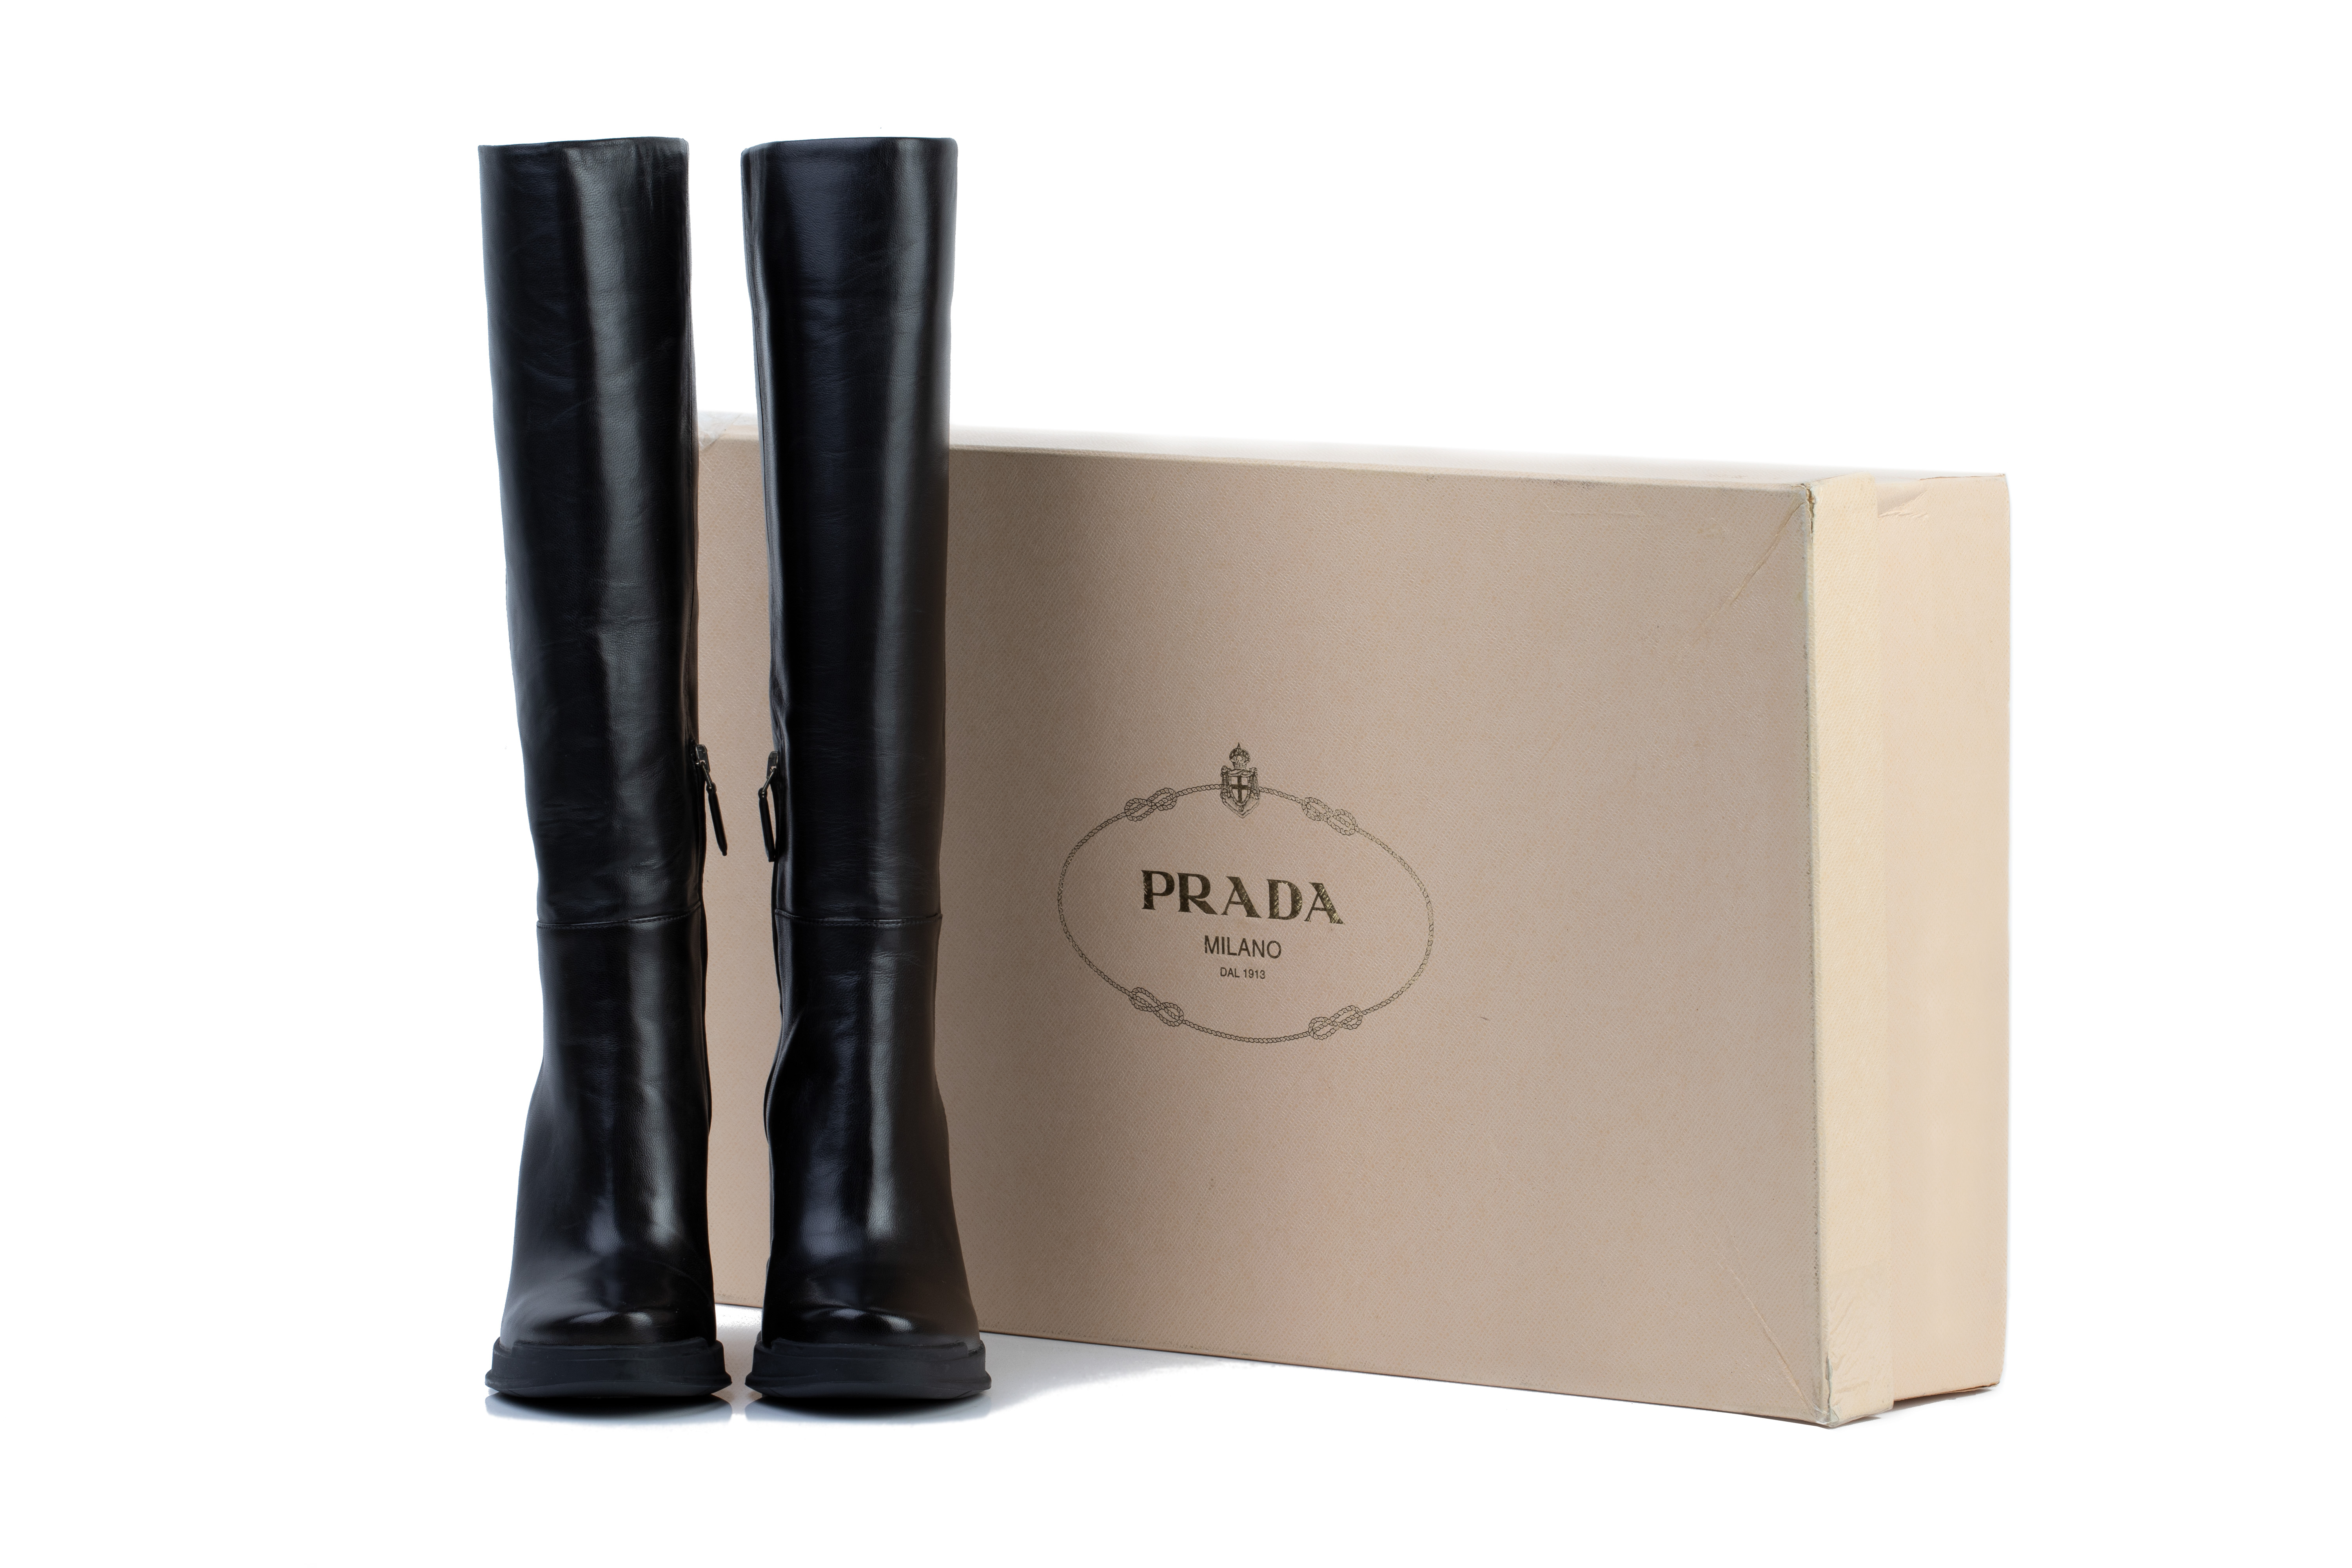 A PAIR OF PRADA BLACK LEATHER WEDGE BOOTS EU36 - Image 6 of 6